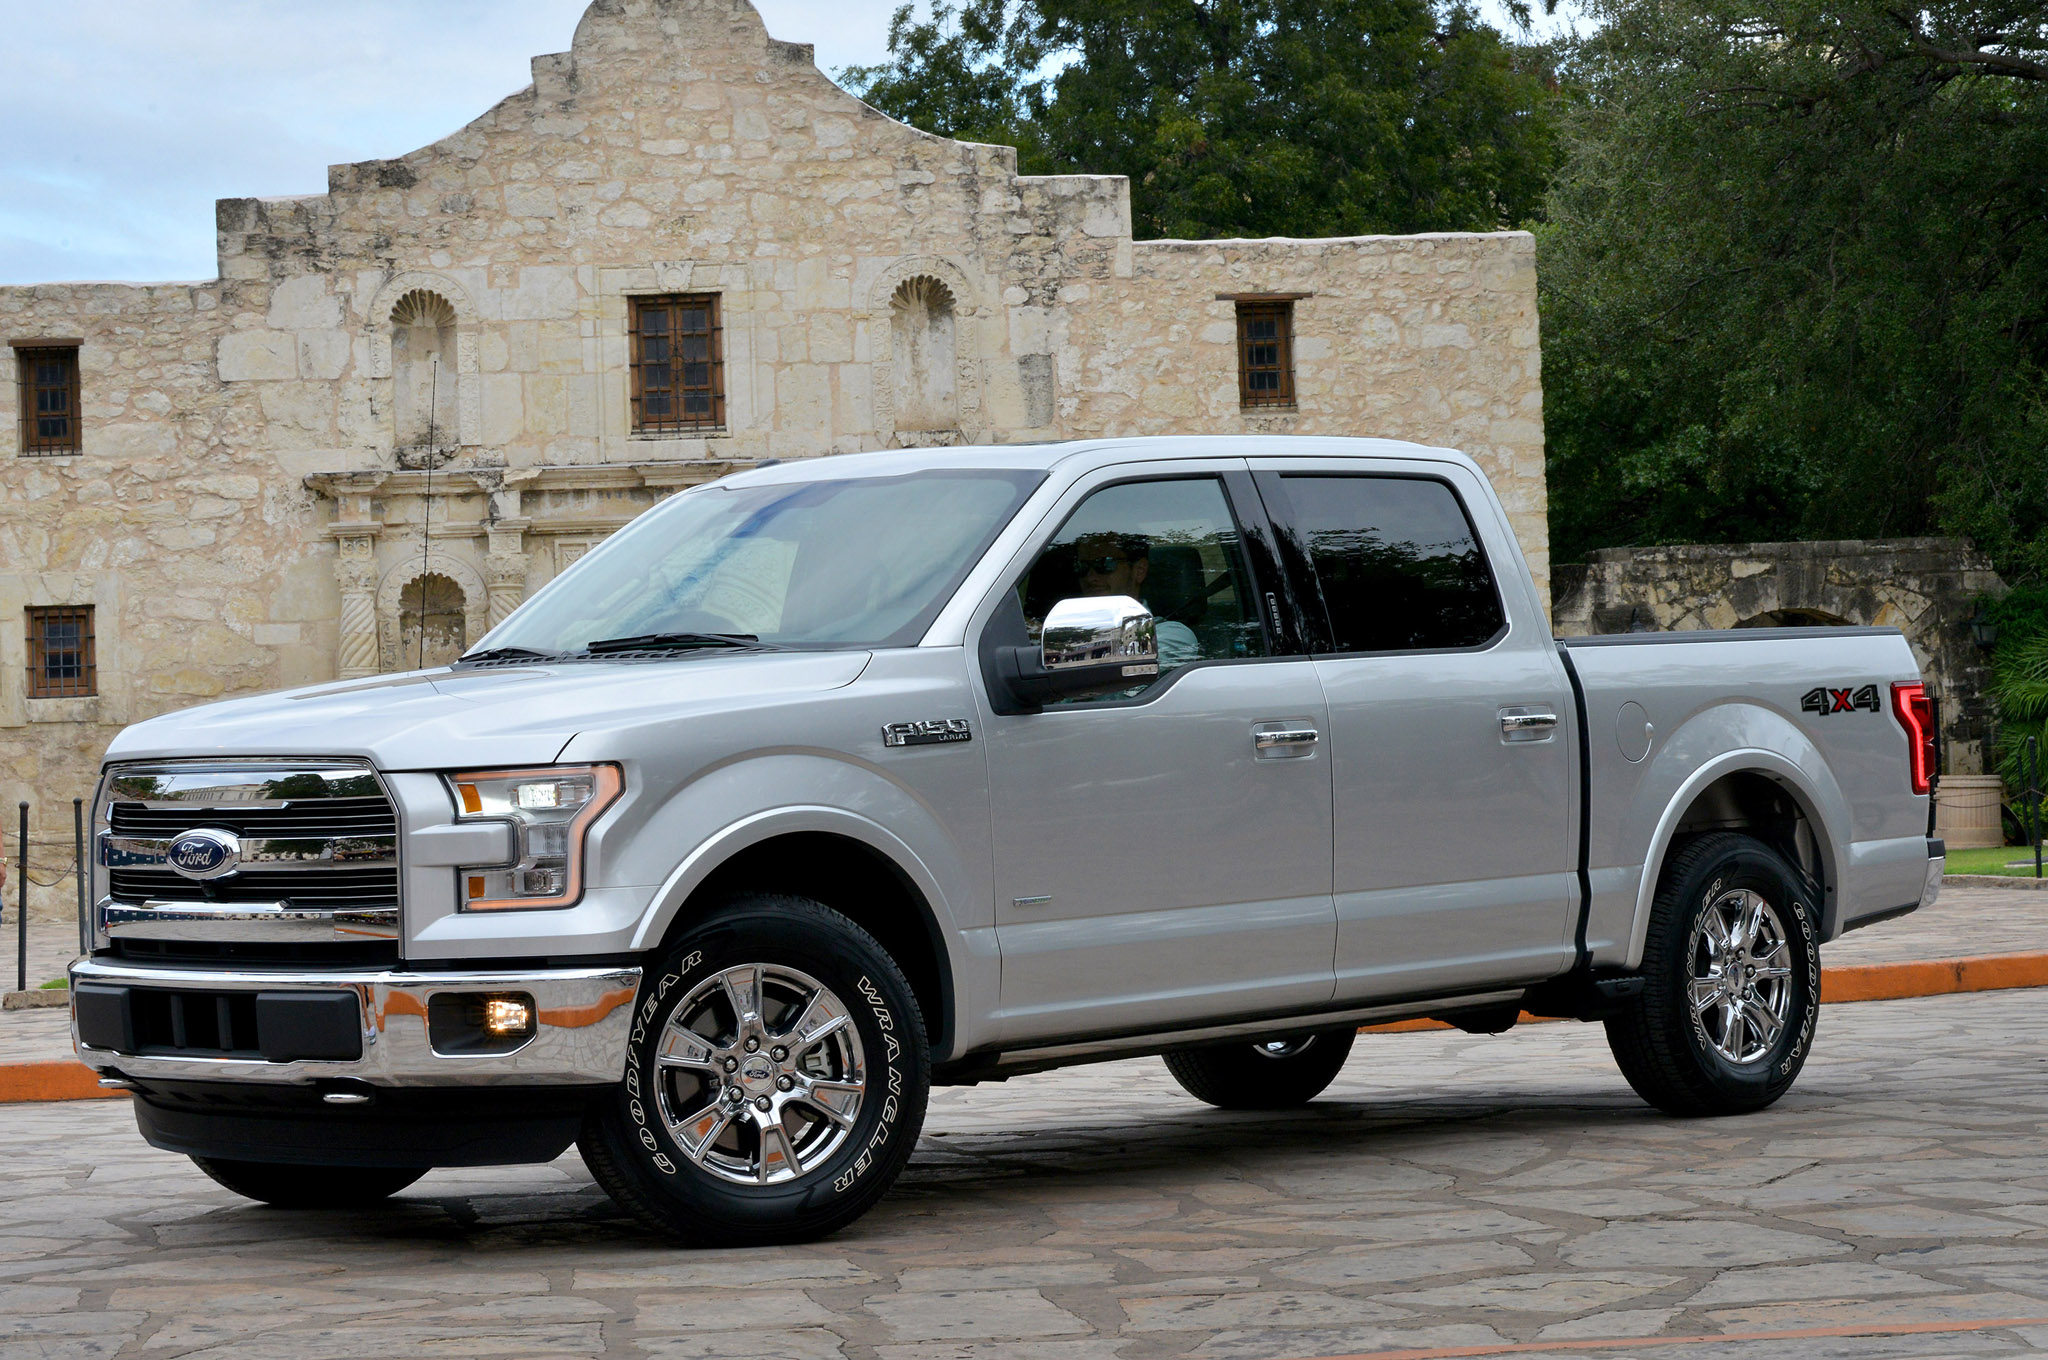 Ford Hires 850 More Workers to Build 2015 F-150